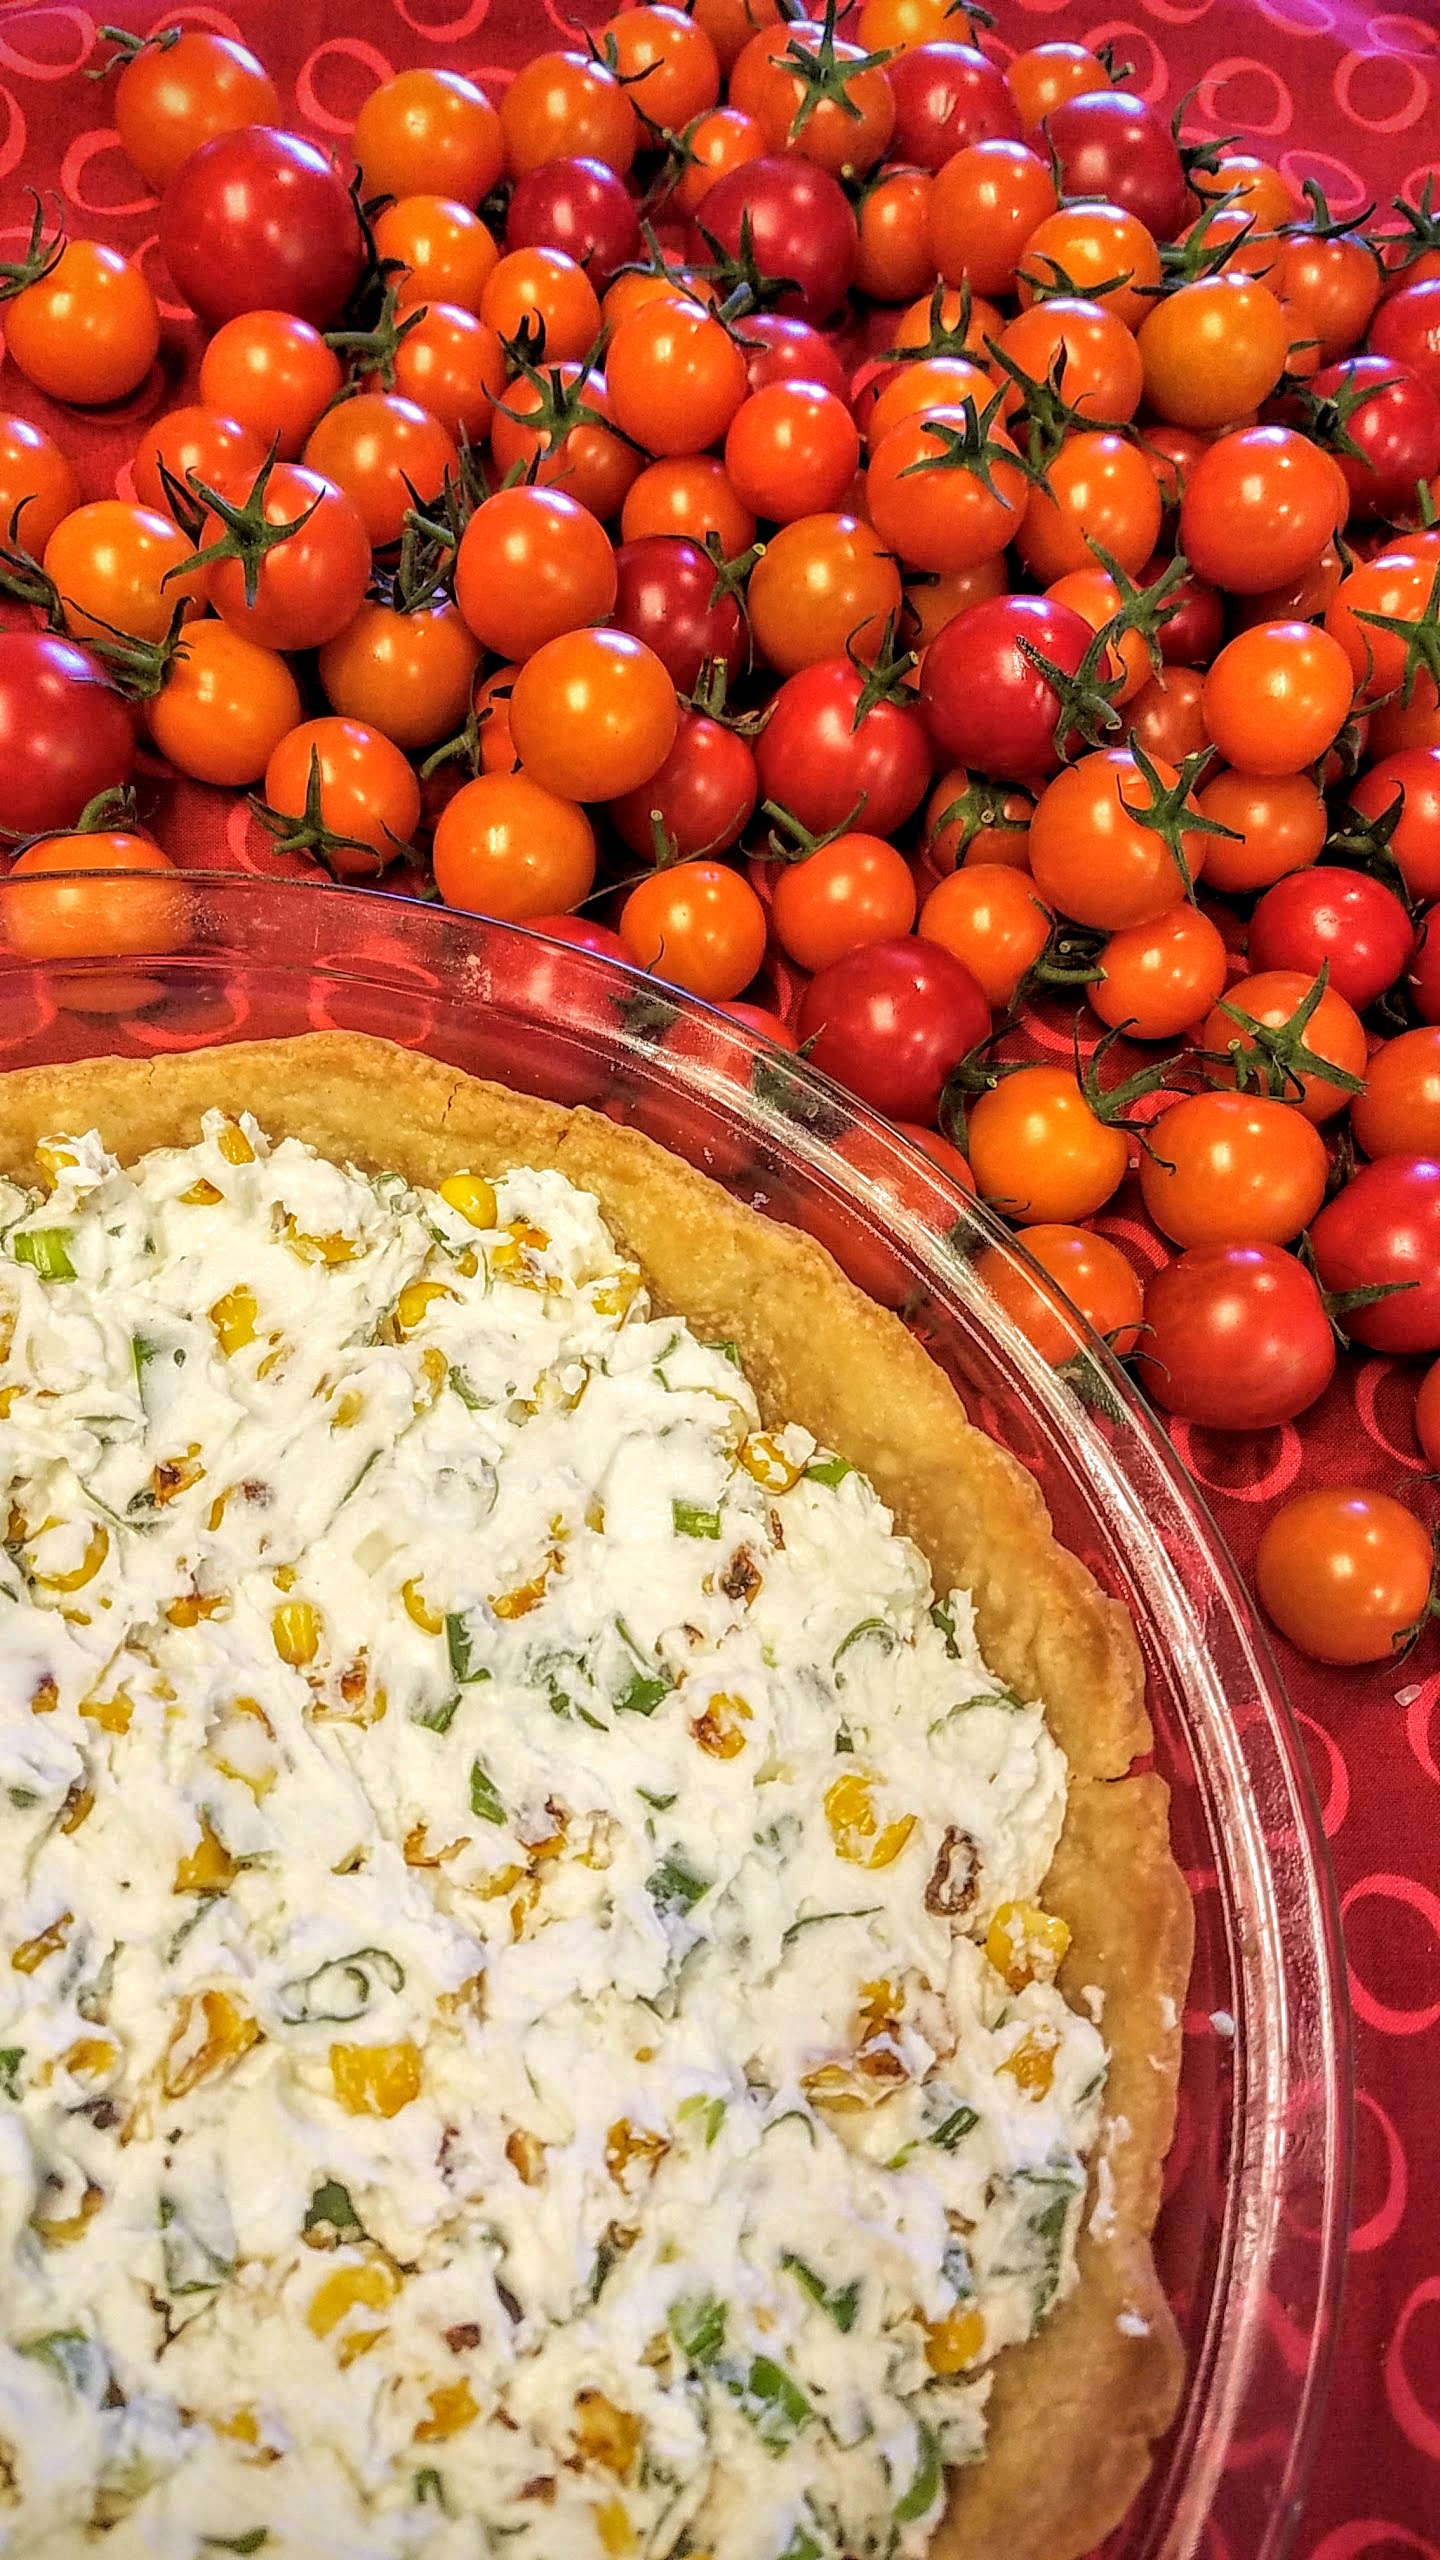 Tomato Pie Recipe with Fresh Cheeses and Uncooked Cherry Tomatoes